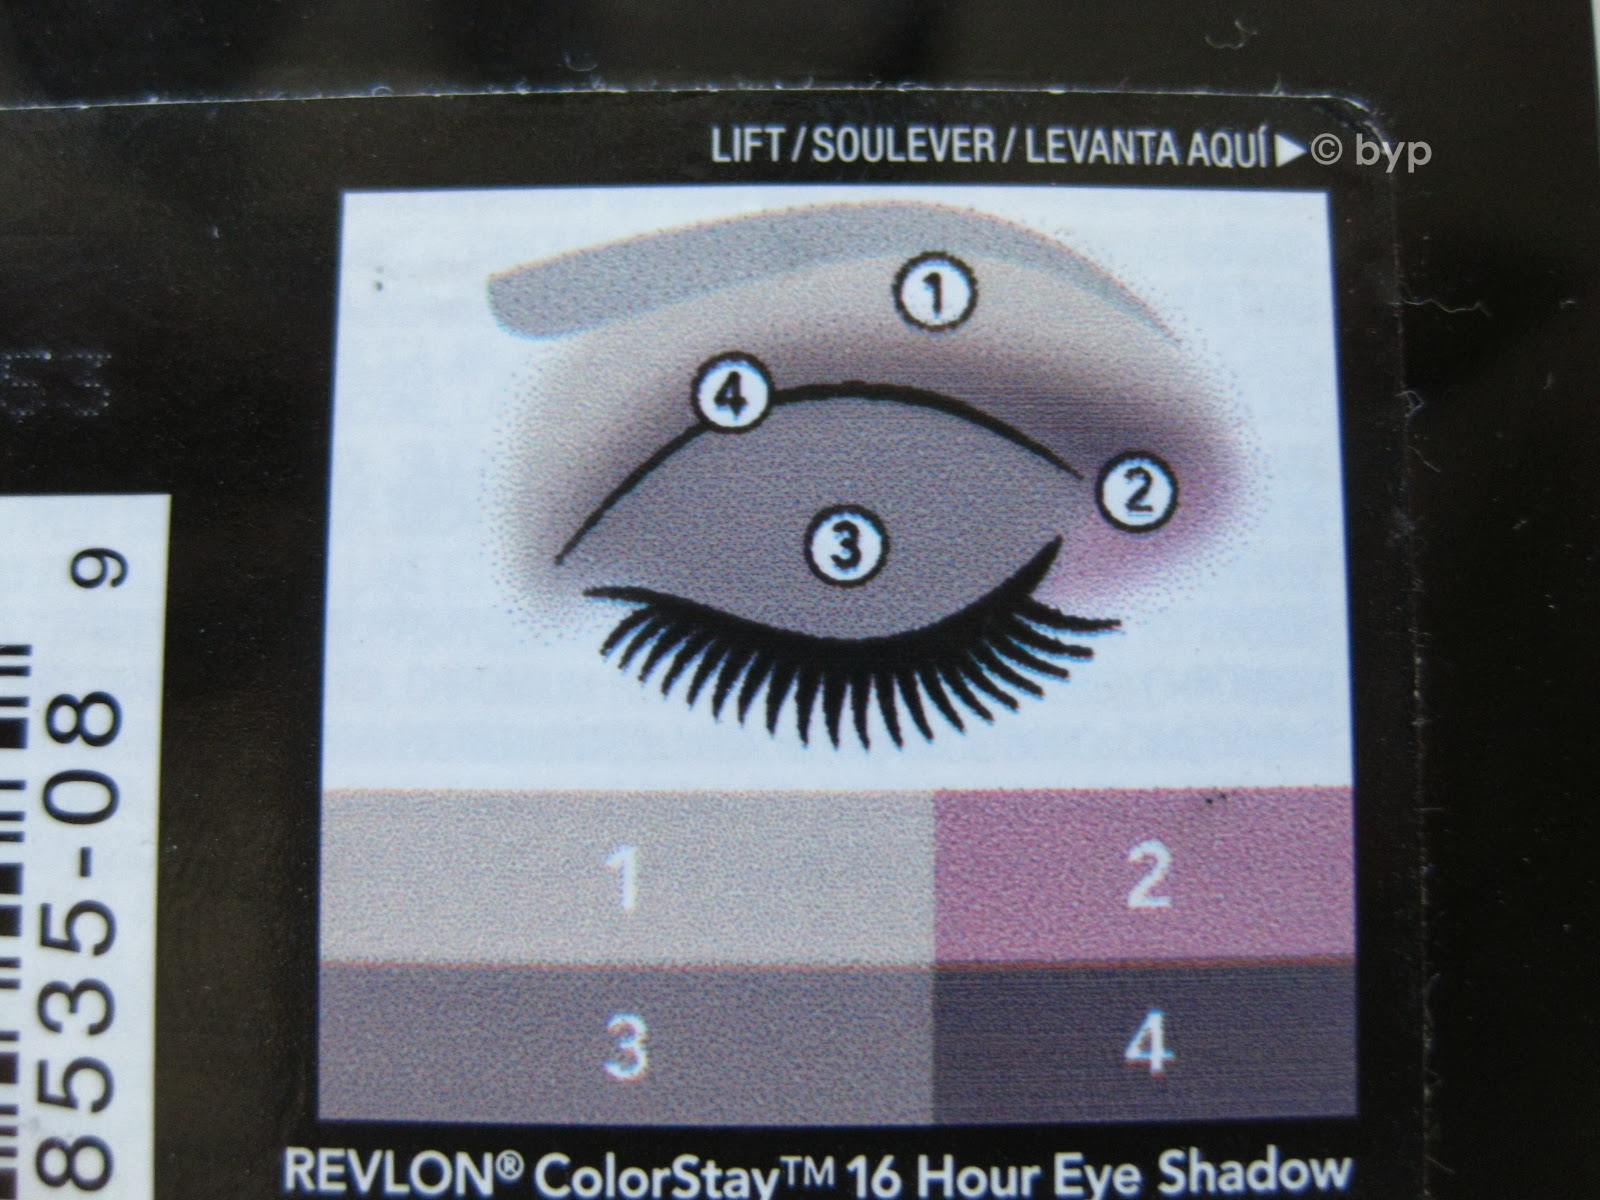 Adventures of a bright young person make up revlon colorstay i decided to try the look and this is my attempt im not much of an eyeshadow person meaning im quite mediocre at creating beautiful eye looks and my ccuart Images